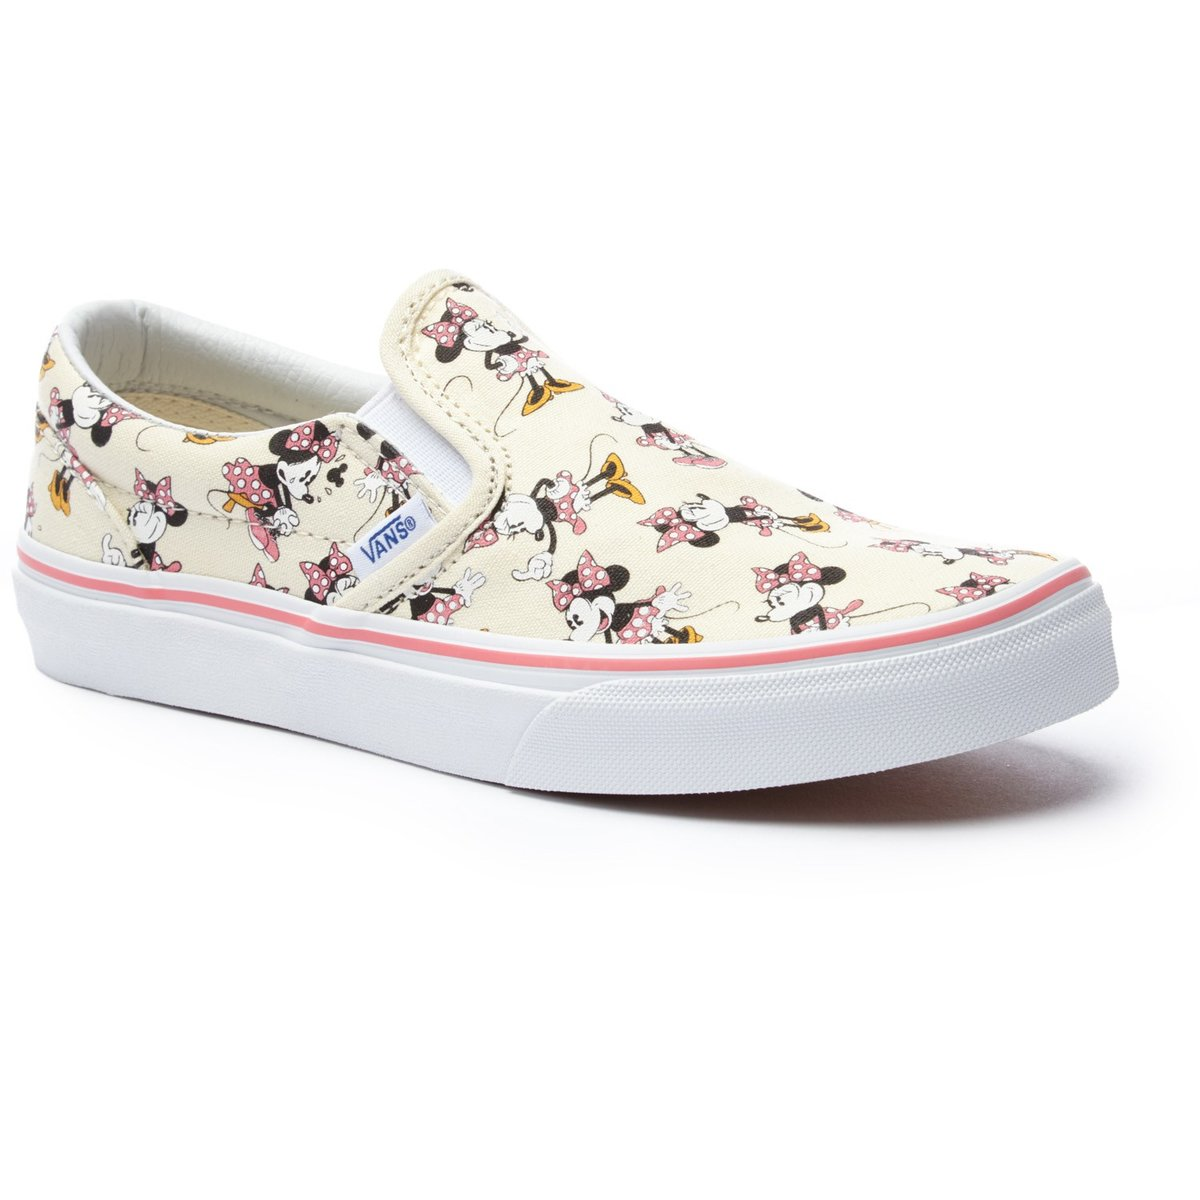 vans classic slip on shoes girl s disney minnie mouse classic white ... 068aa62d3